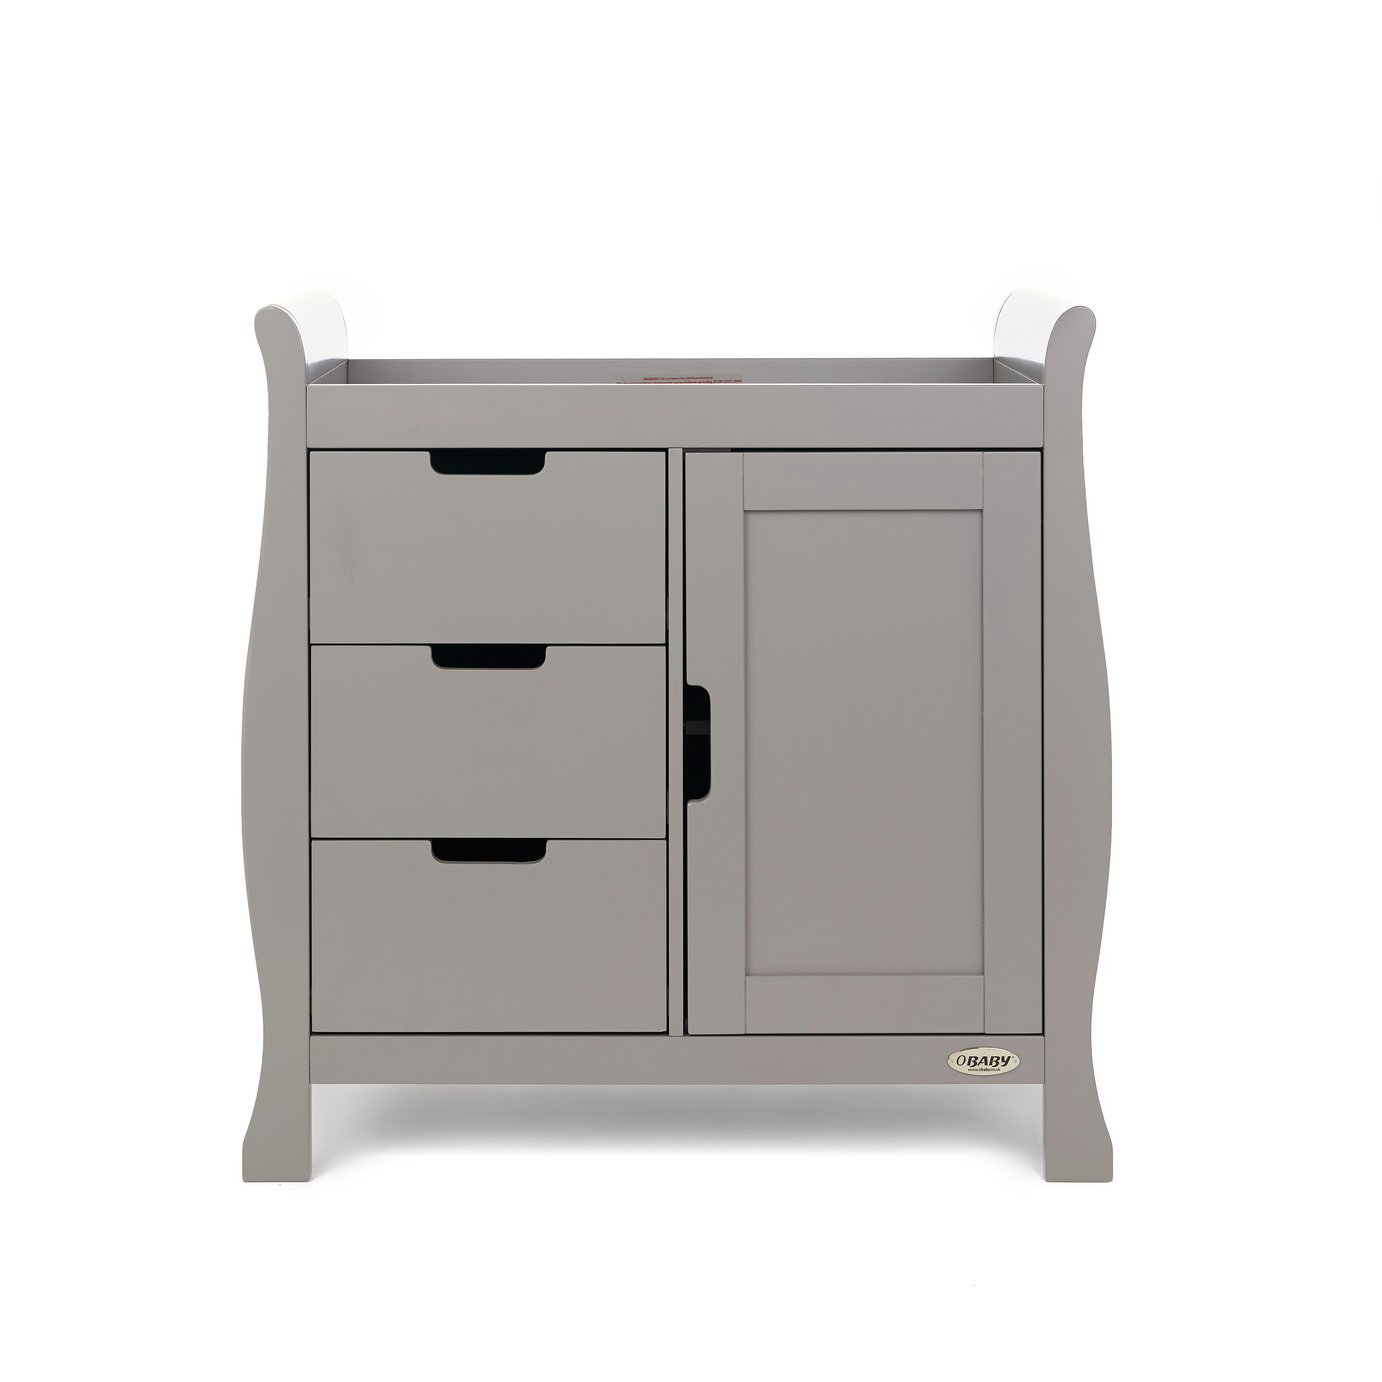 Obaby Stamford Sleigh Changing Unit - Taupe Grey